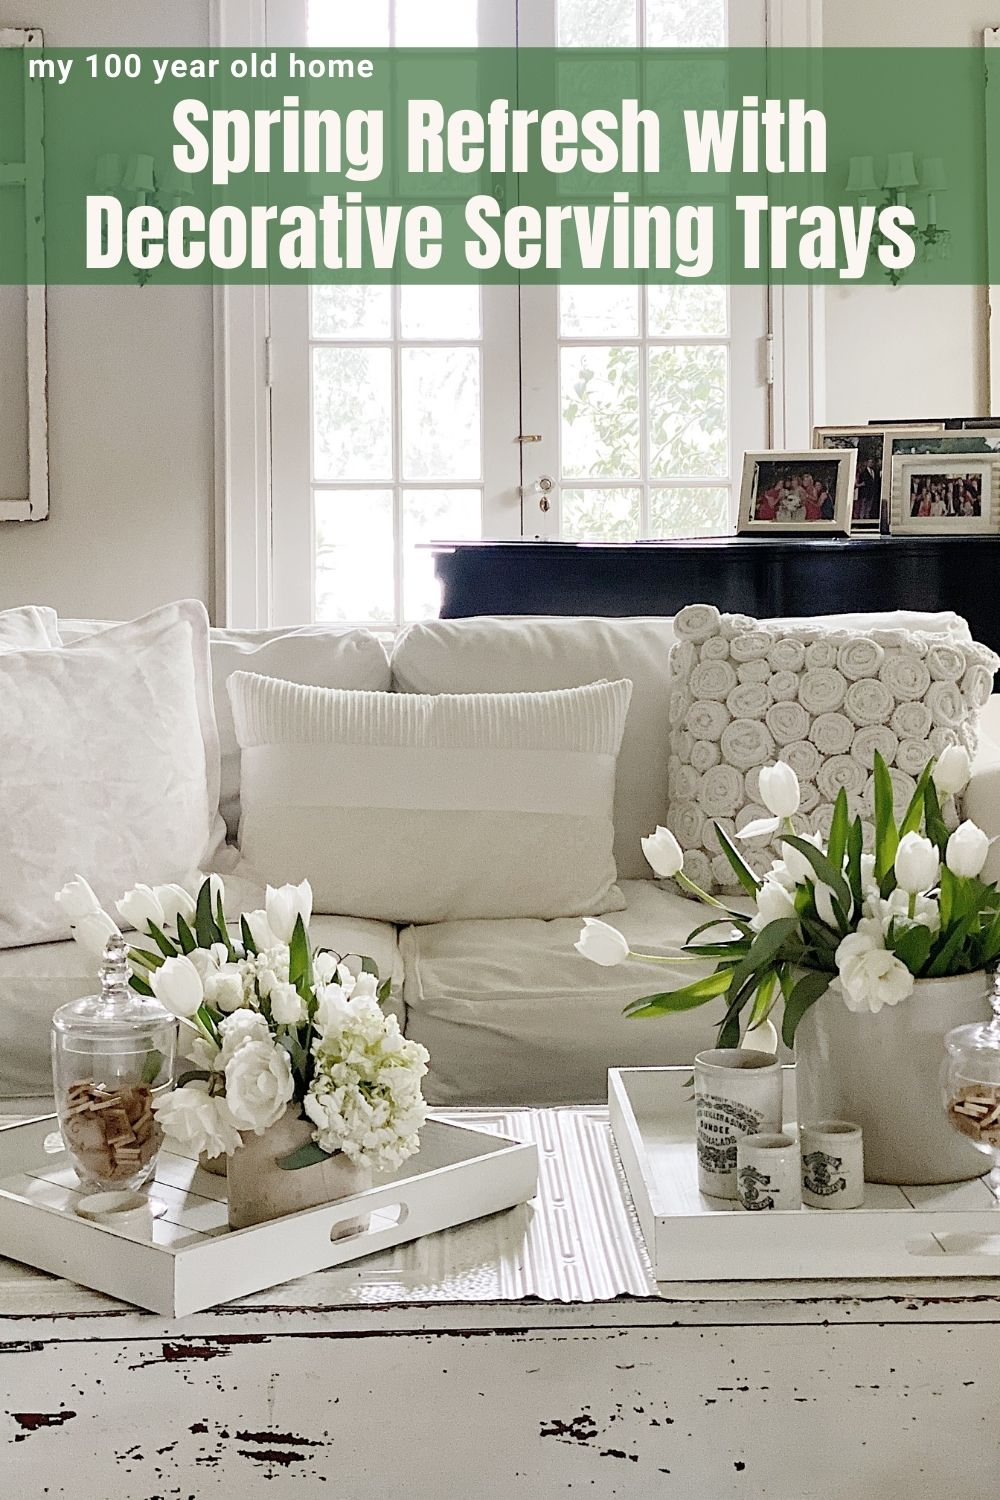 This week I have teamed up with my friend KariAnne at Thistlewood Farms. We are doing a Spring Refresh in five different rooms with one favorite new item in each room. Today I refreshed the Living Room with wood decorative serving trays.